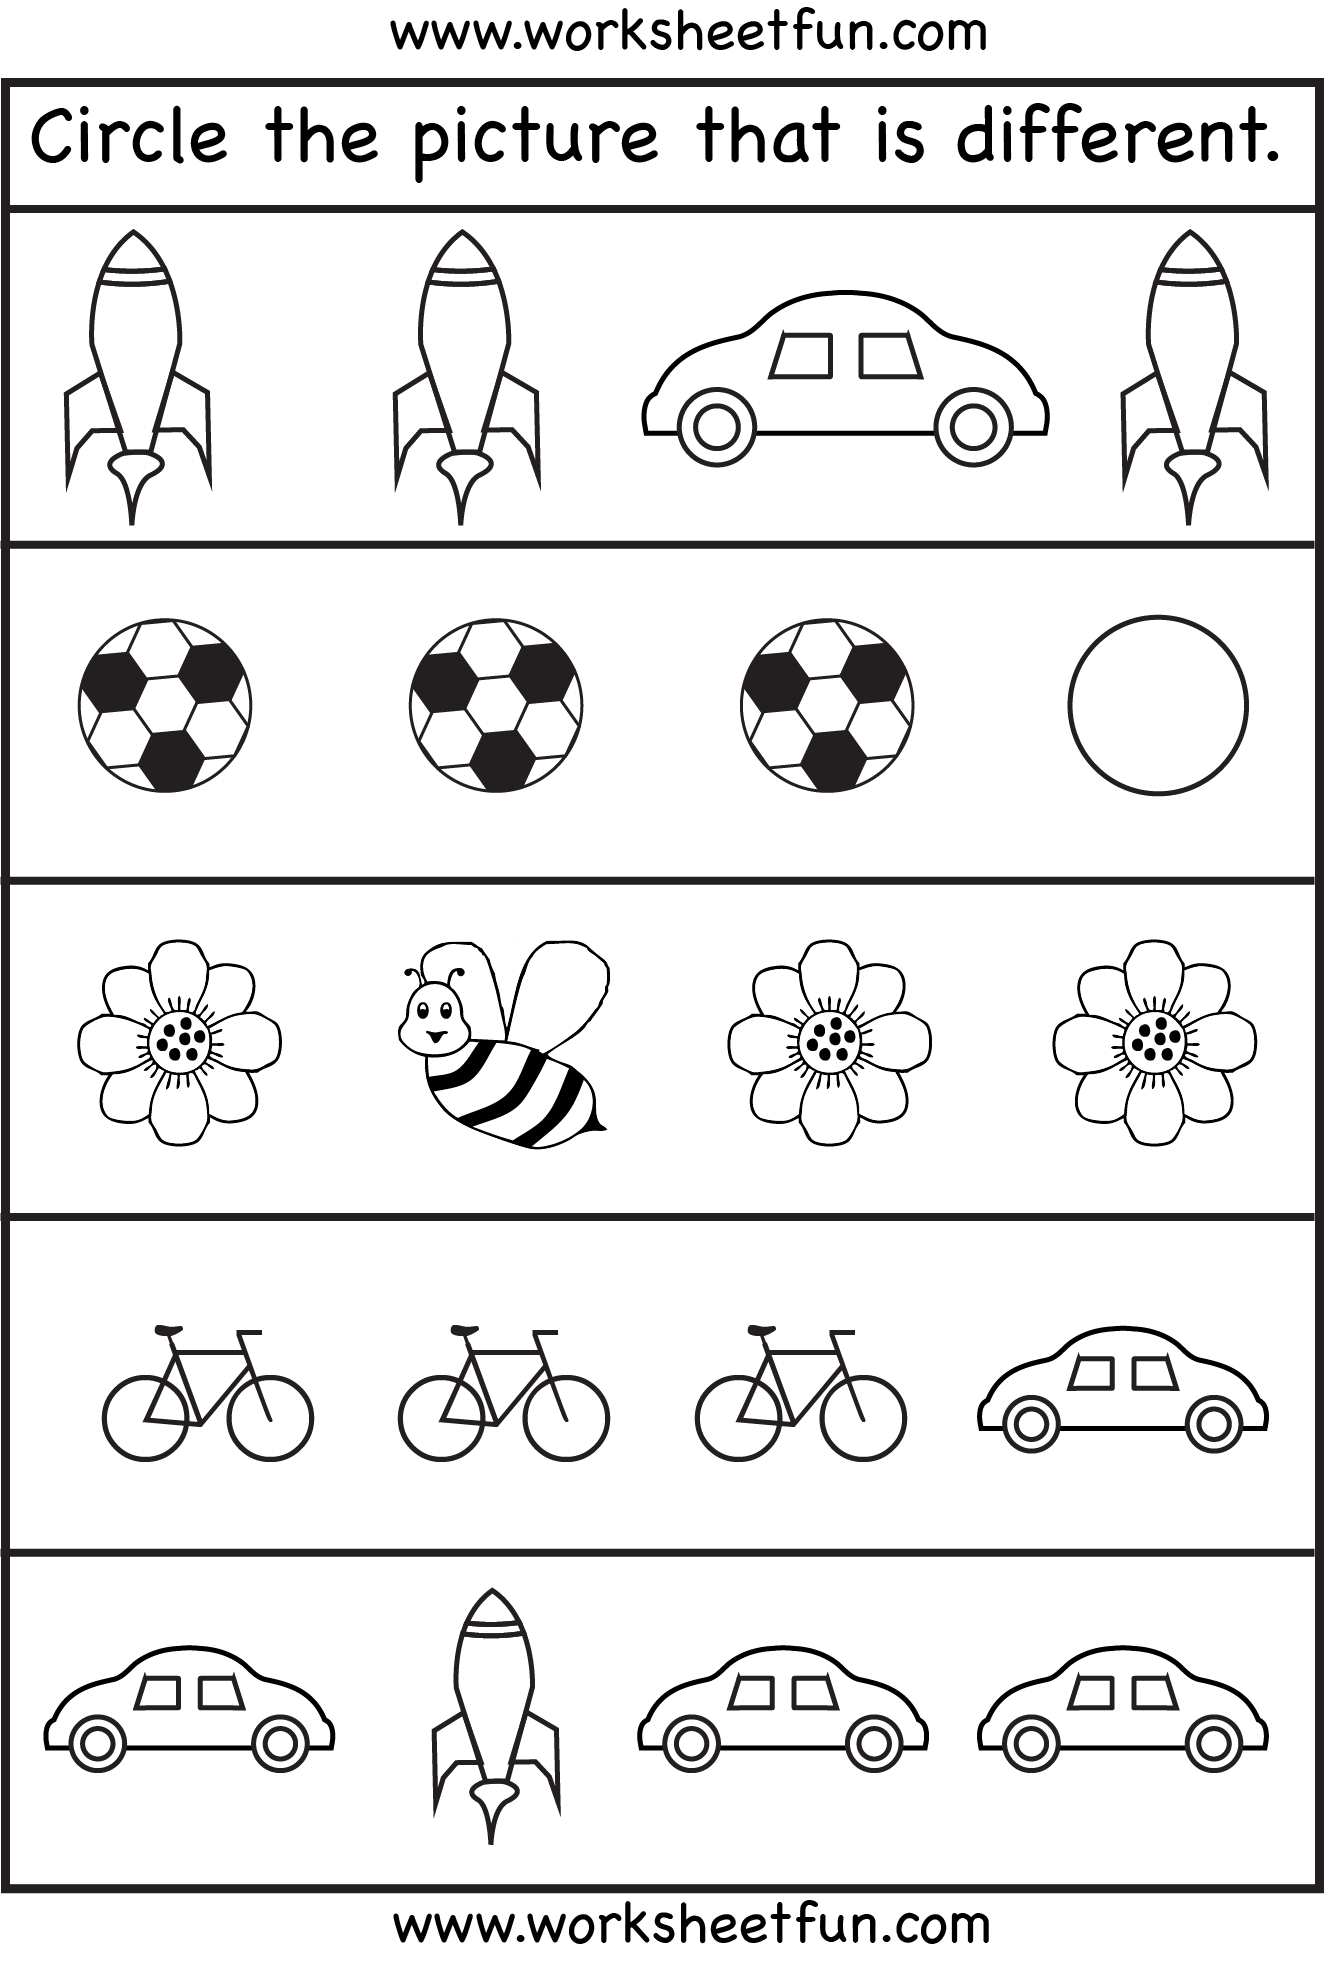 Worksheet For Preschool To Do : Circle the picture that is different worksheets